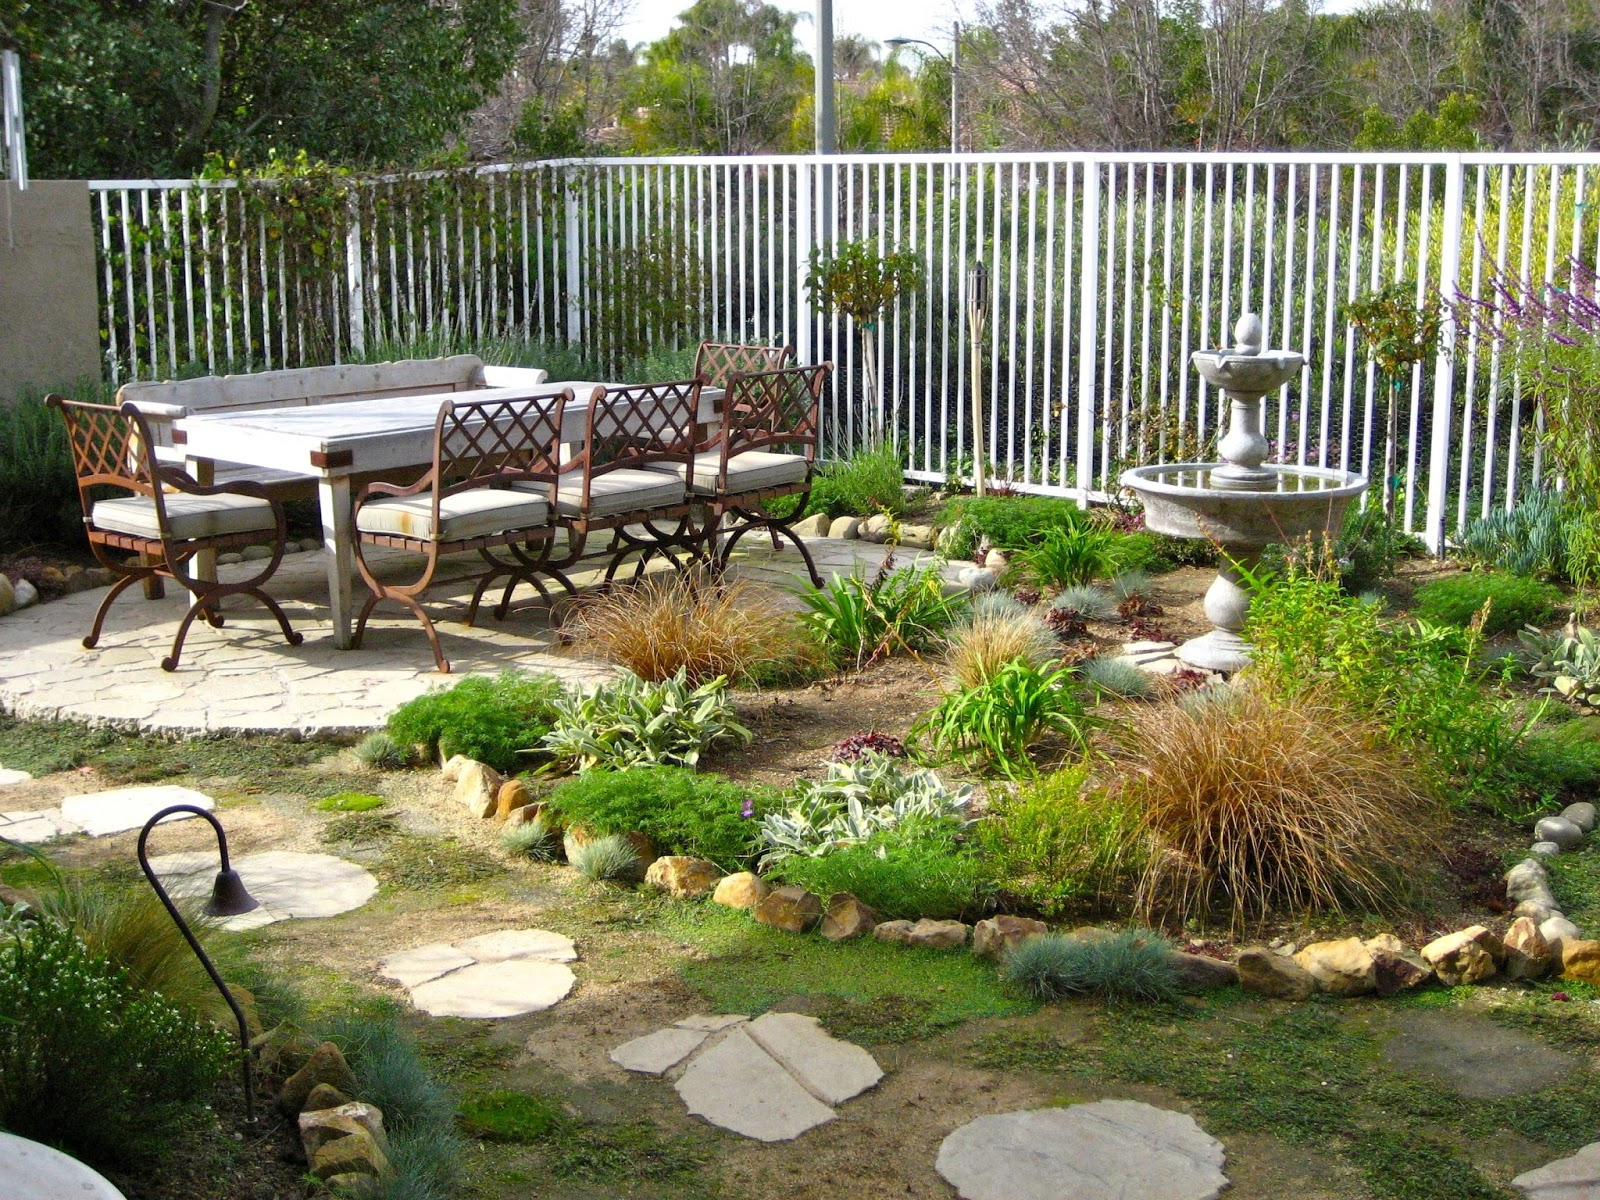 Home Priority Small Garden Design As The Embellishment Of A House